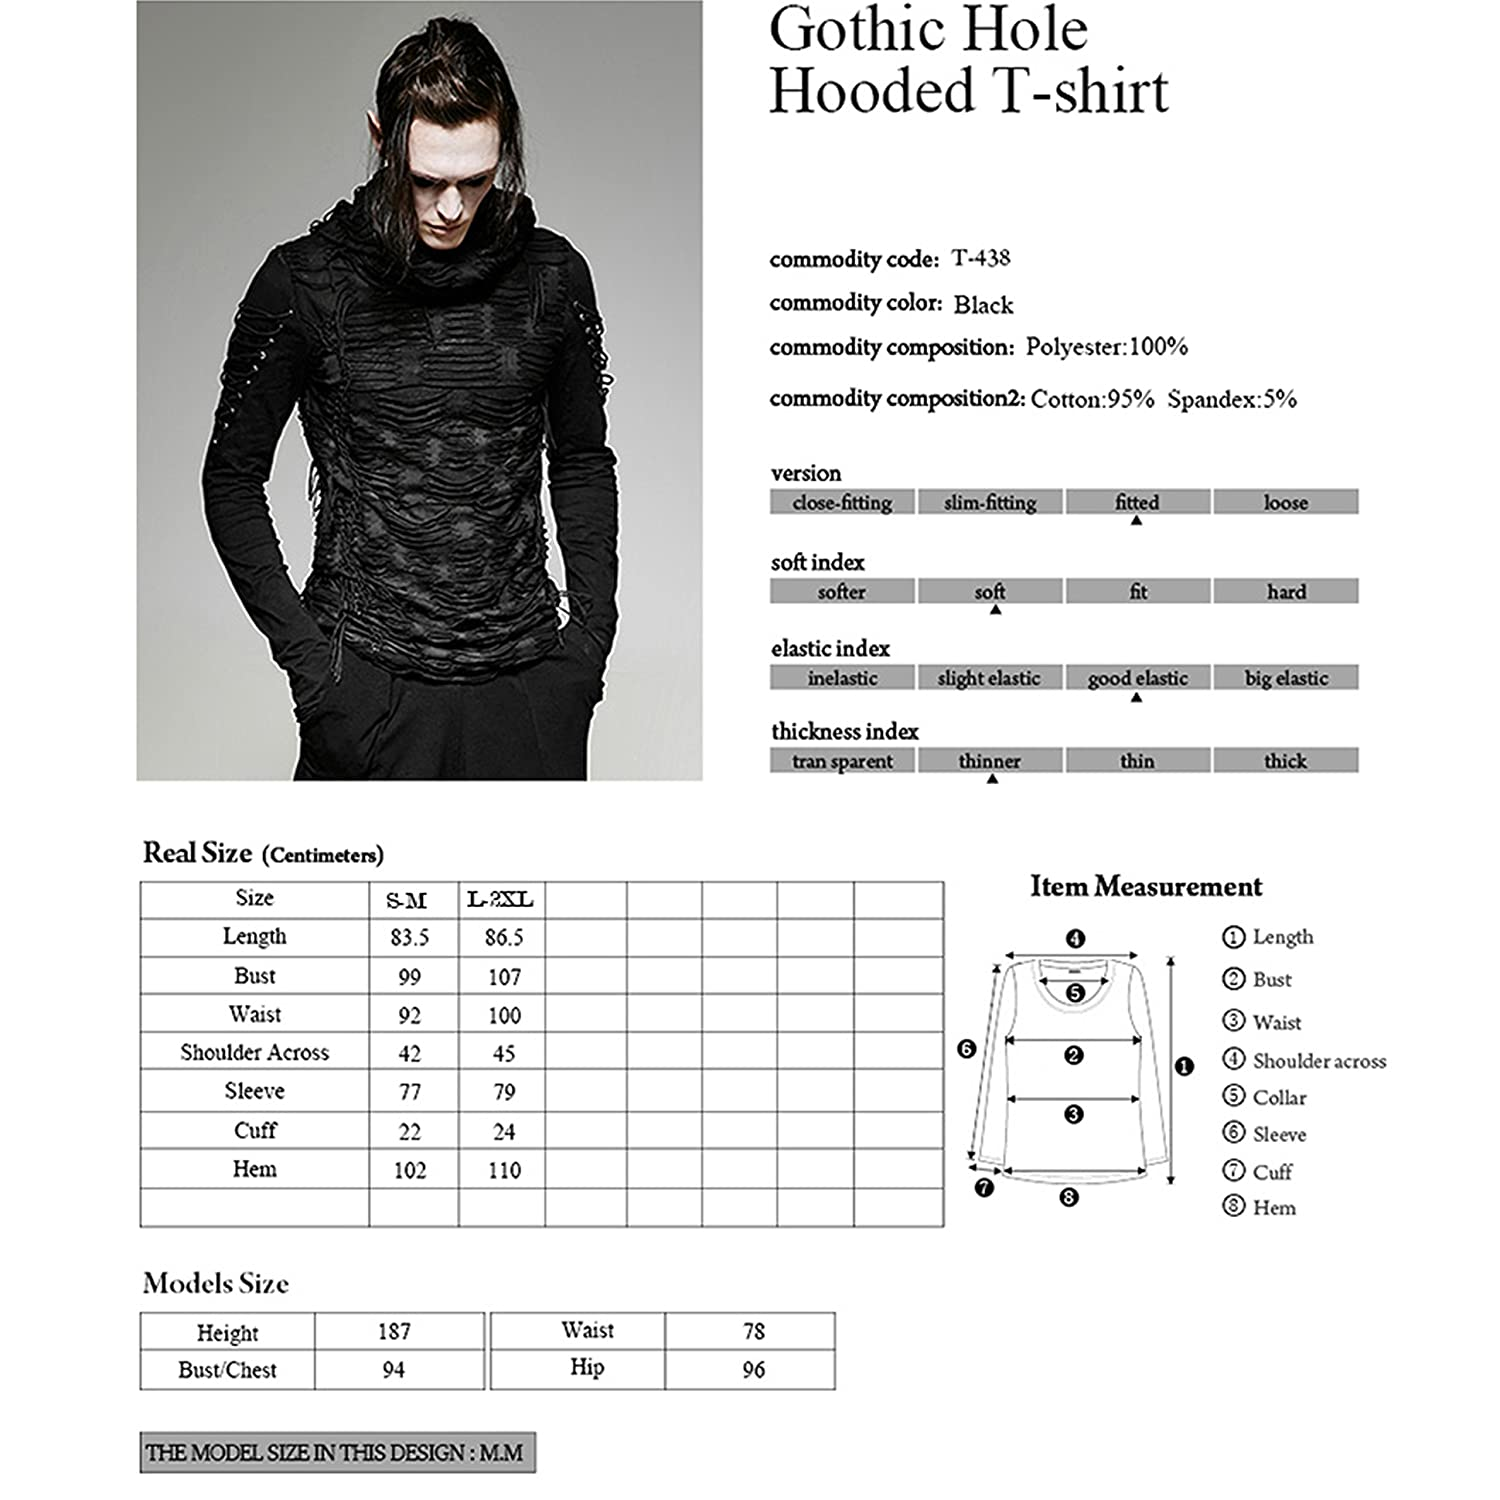 Punk Rave Men Black Gothic Vintage Hole Hooded Long Sleeve Punk Shirt Daily Casual Tops